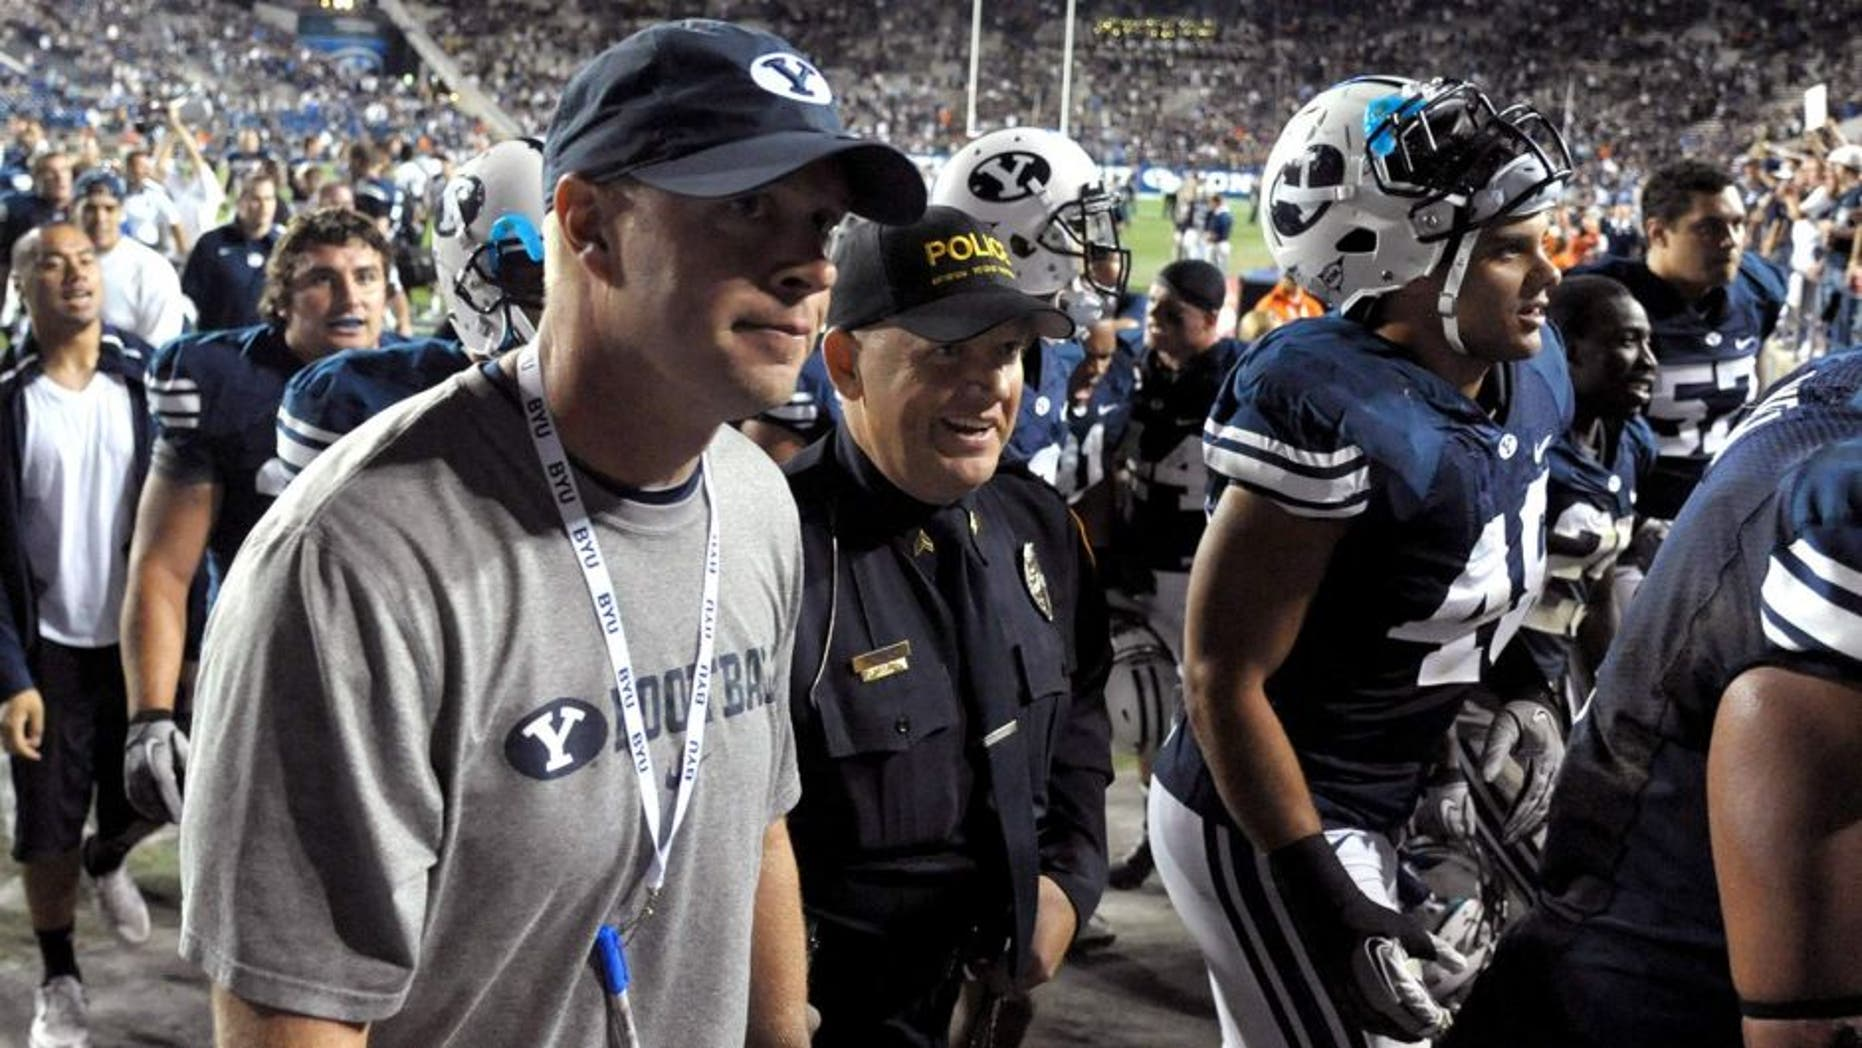 Sep 23, 2011; Provo, UT, USA; BYU Cougars coach Bronco Mendenhall walks off the field after the game against the UCF Knights at LaVell Edwards Stadium. BYU defeated UCF 24-17. Mandatory Credit: Kirby Lee/Image of Sport-USA TODAY Sports